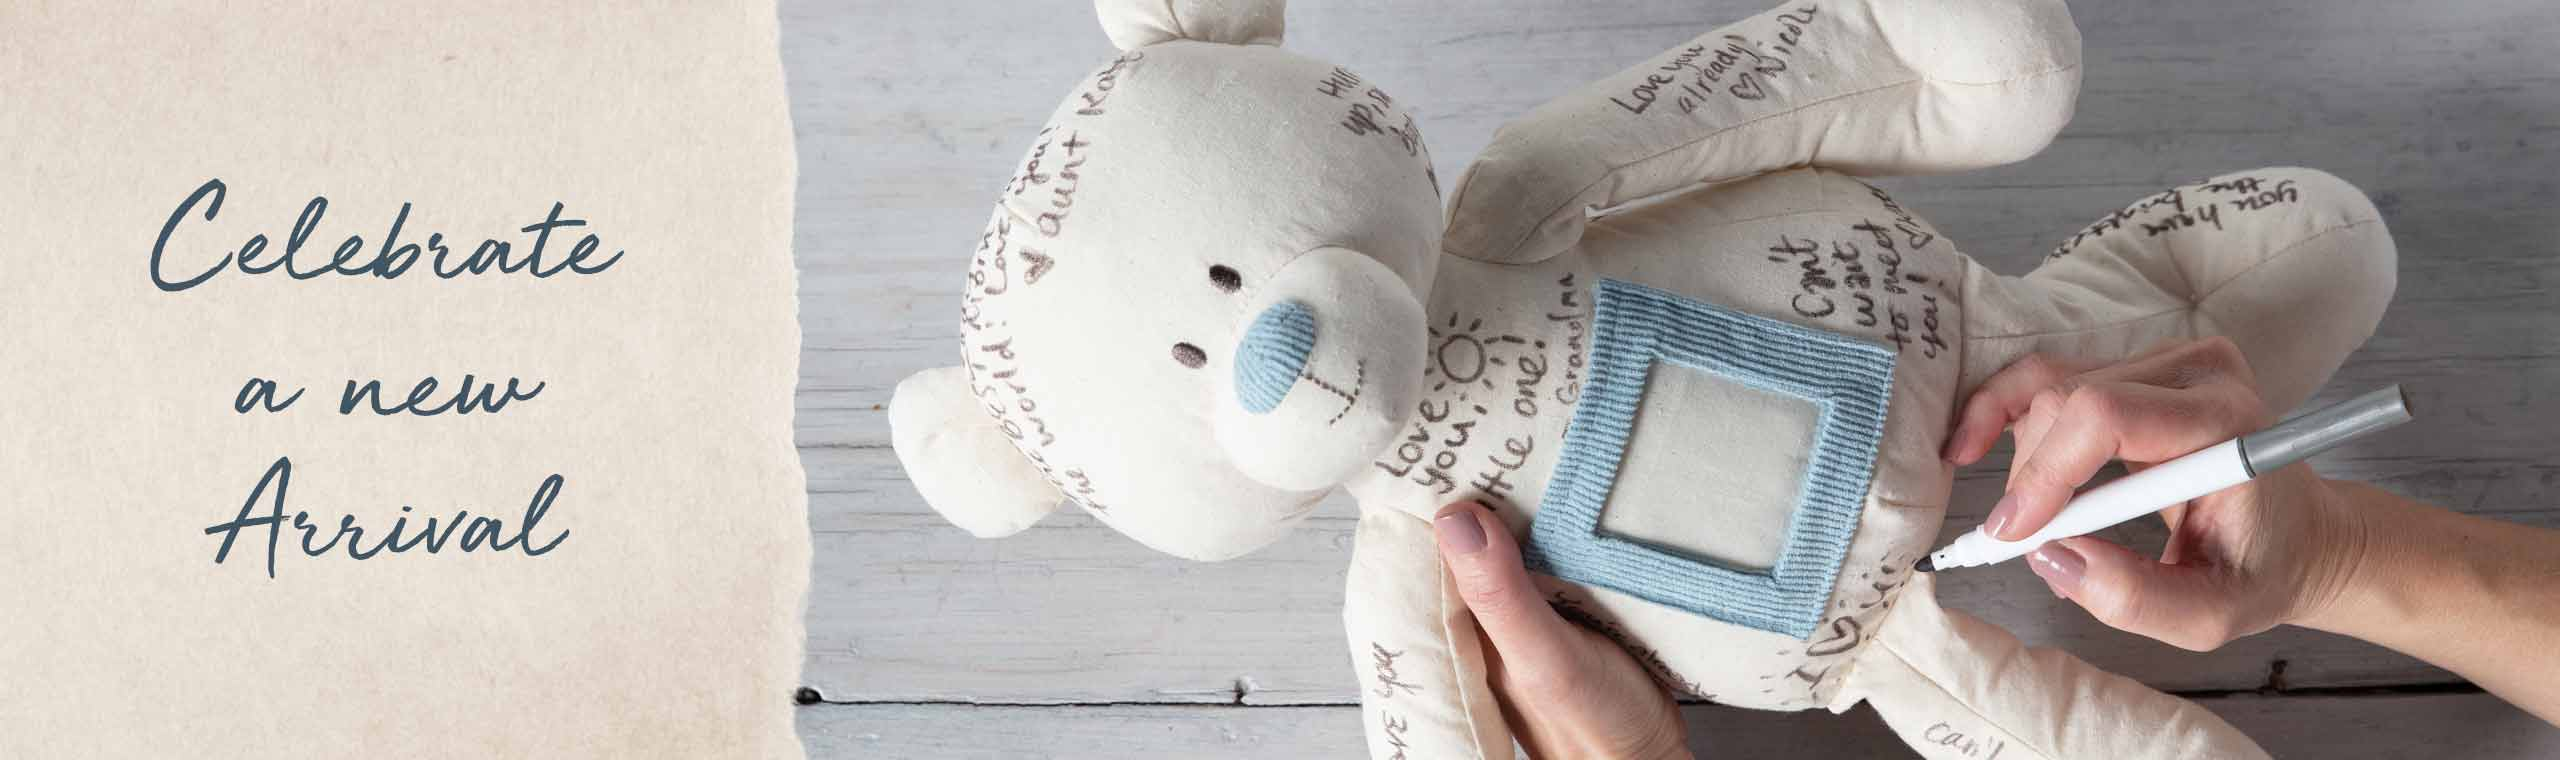 Celebrate a New Arrival. Someone writing a loving message on a white stuffed bear.